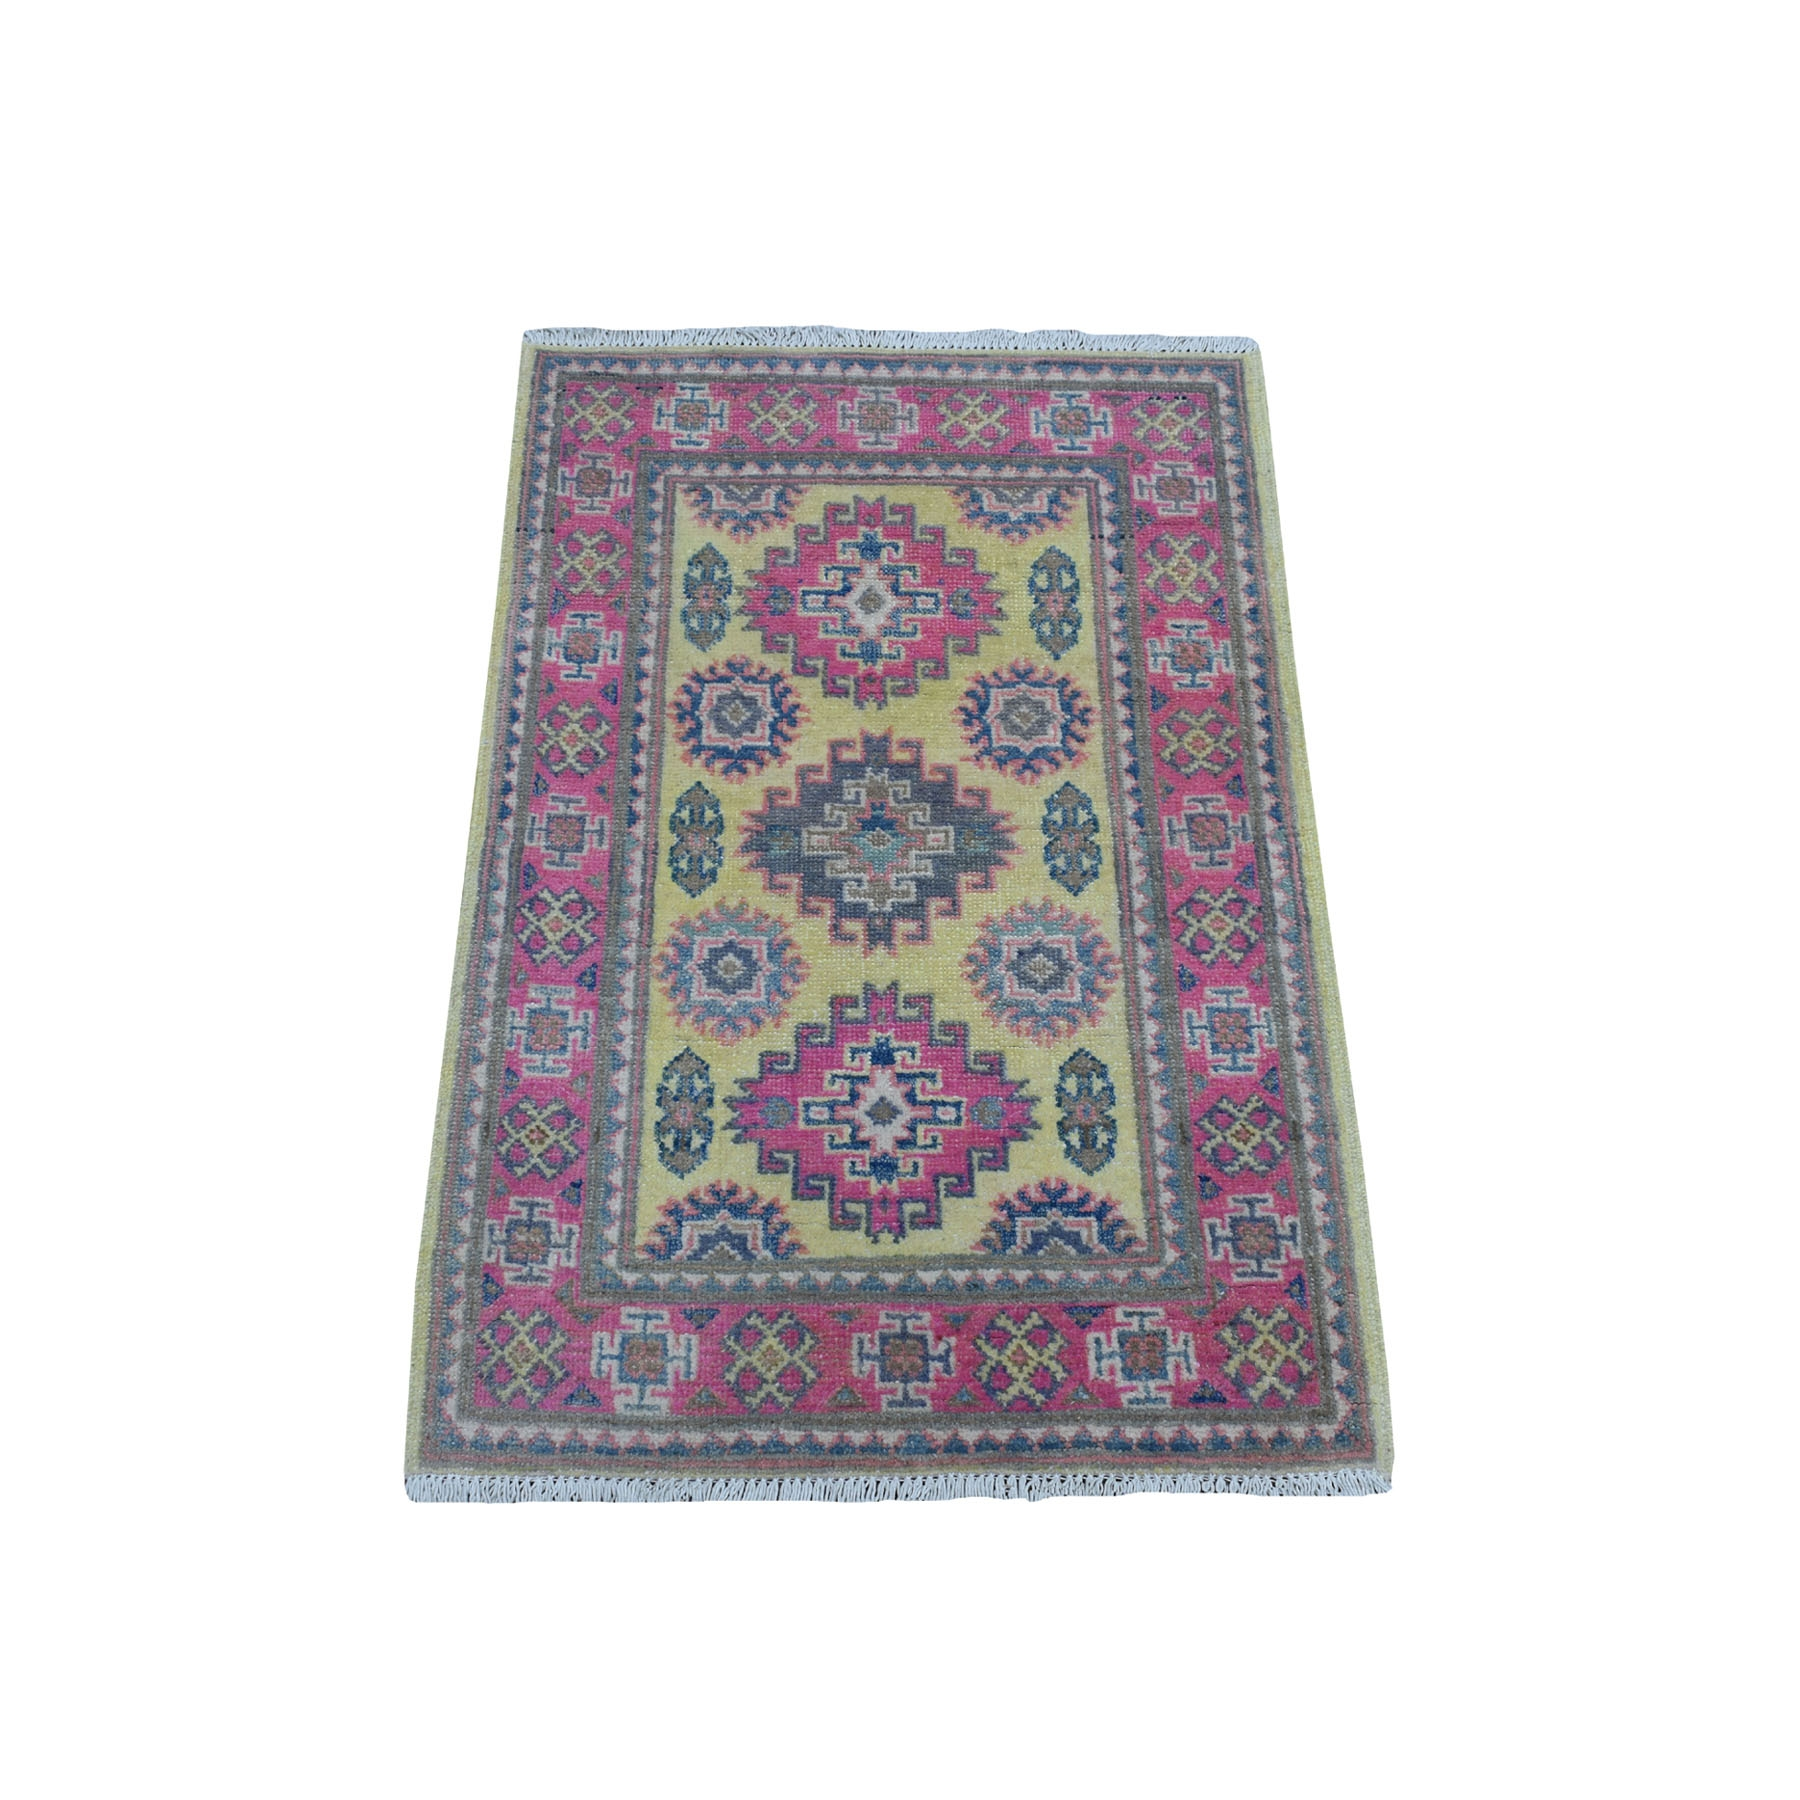 "2'X2'10"" Colorful Yellow Fusion Kazak Pure Wool Geometric Design Hand Knotted Oriental Rug moaec98c"